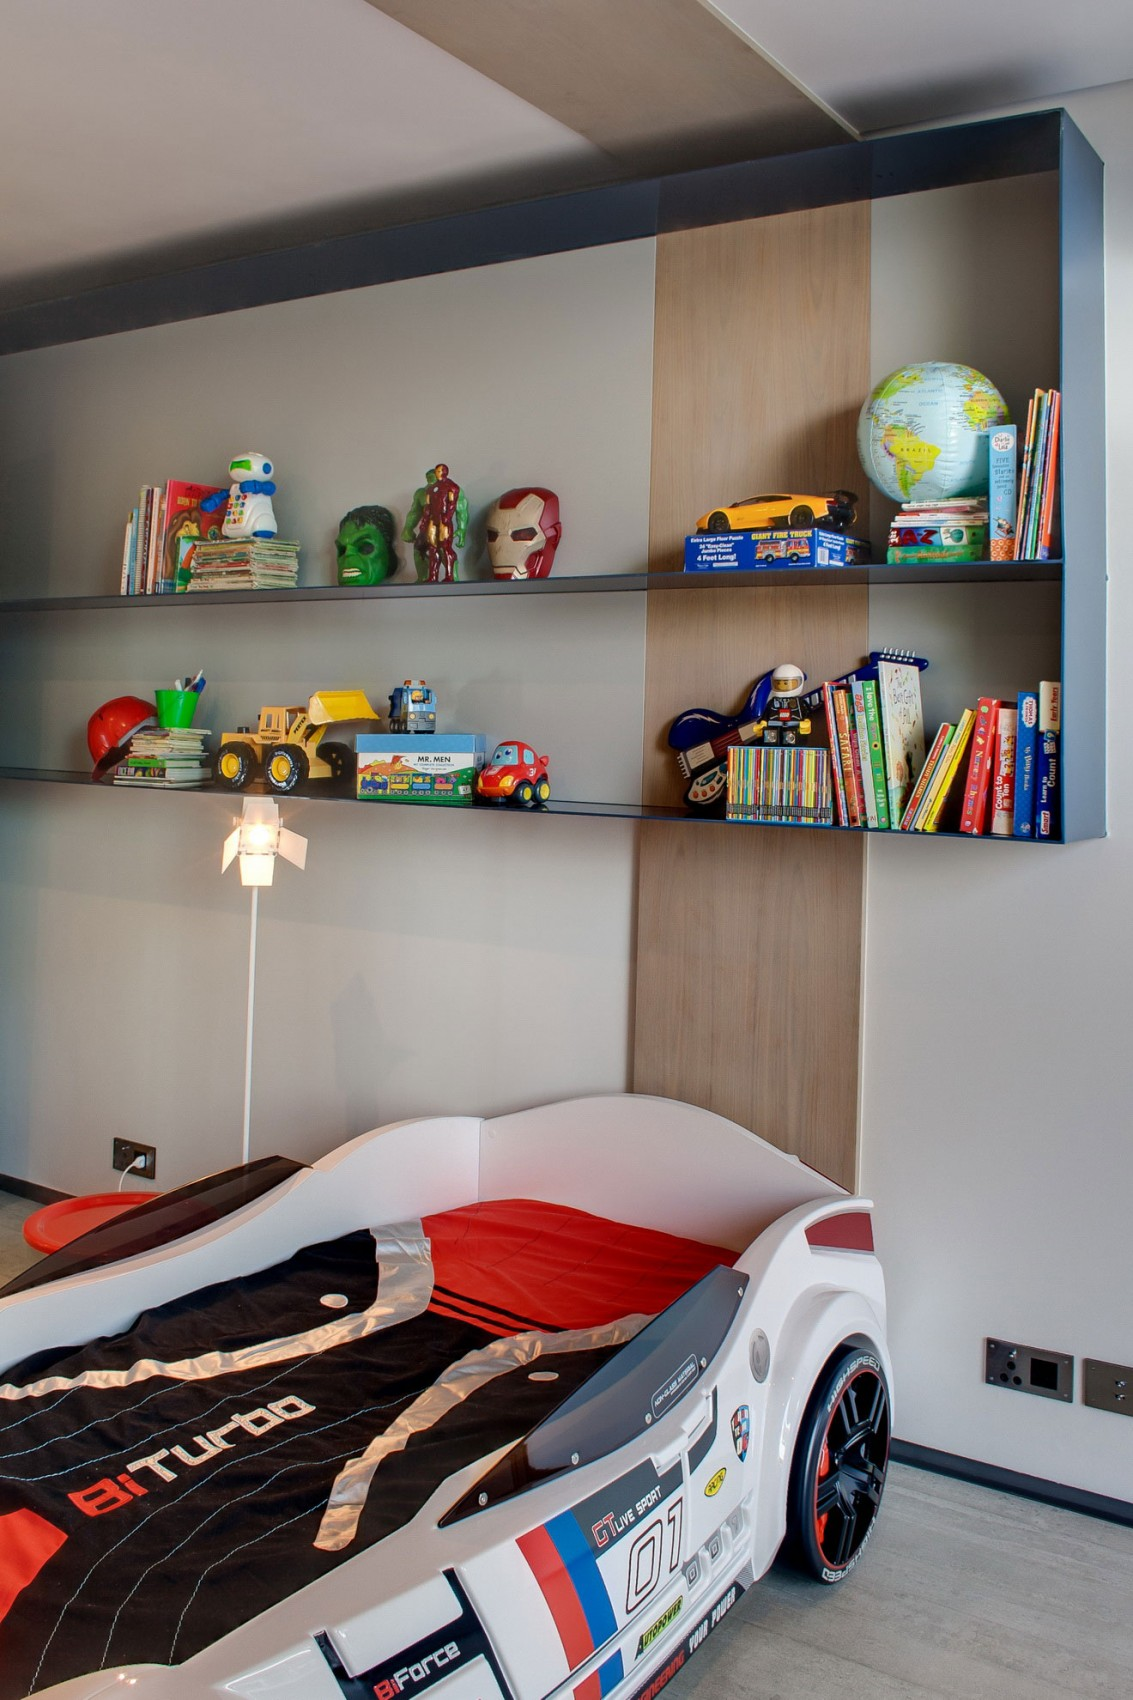 Kids room in House Sar by Nico van der Meulen Architects